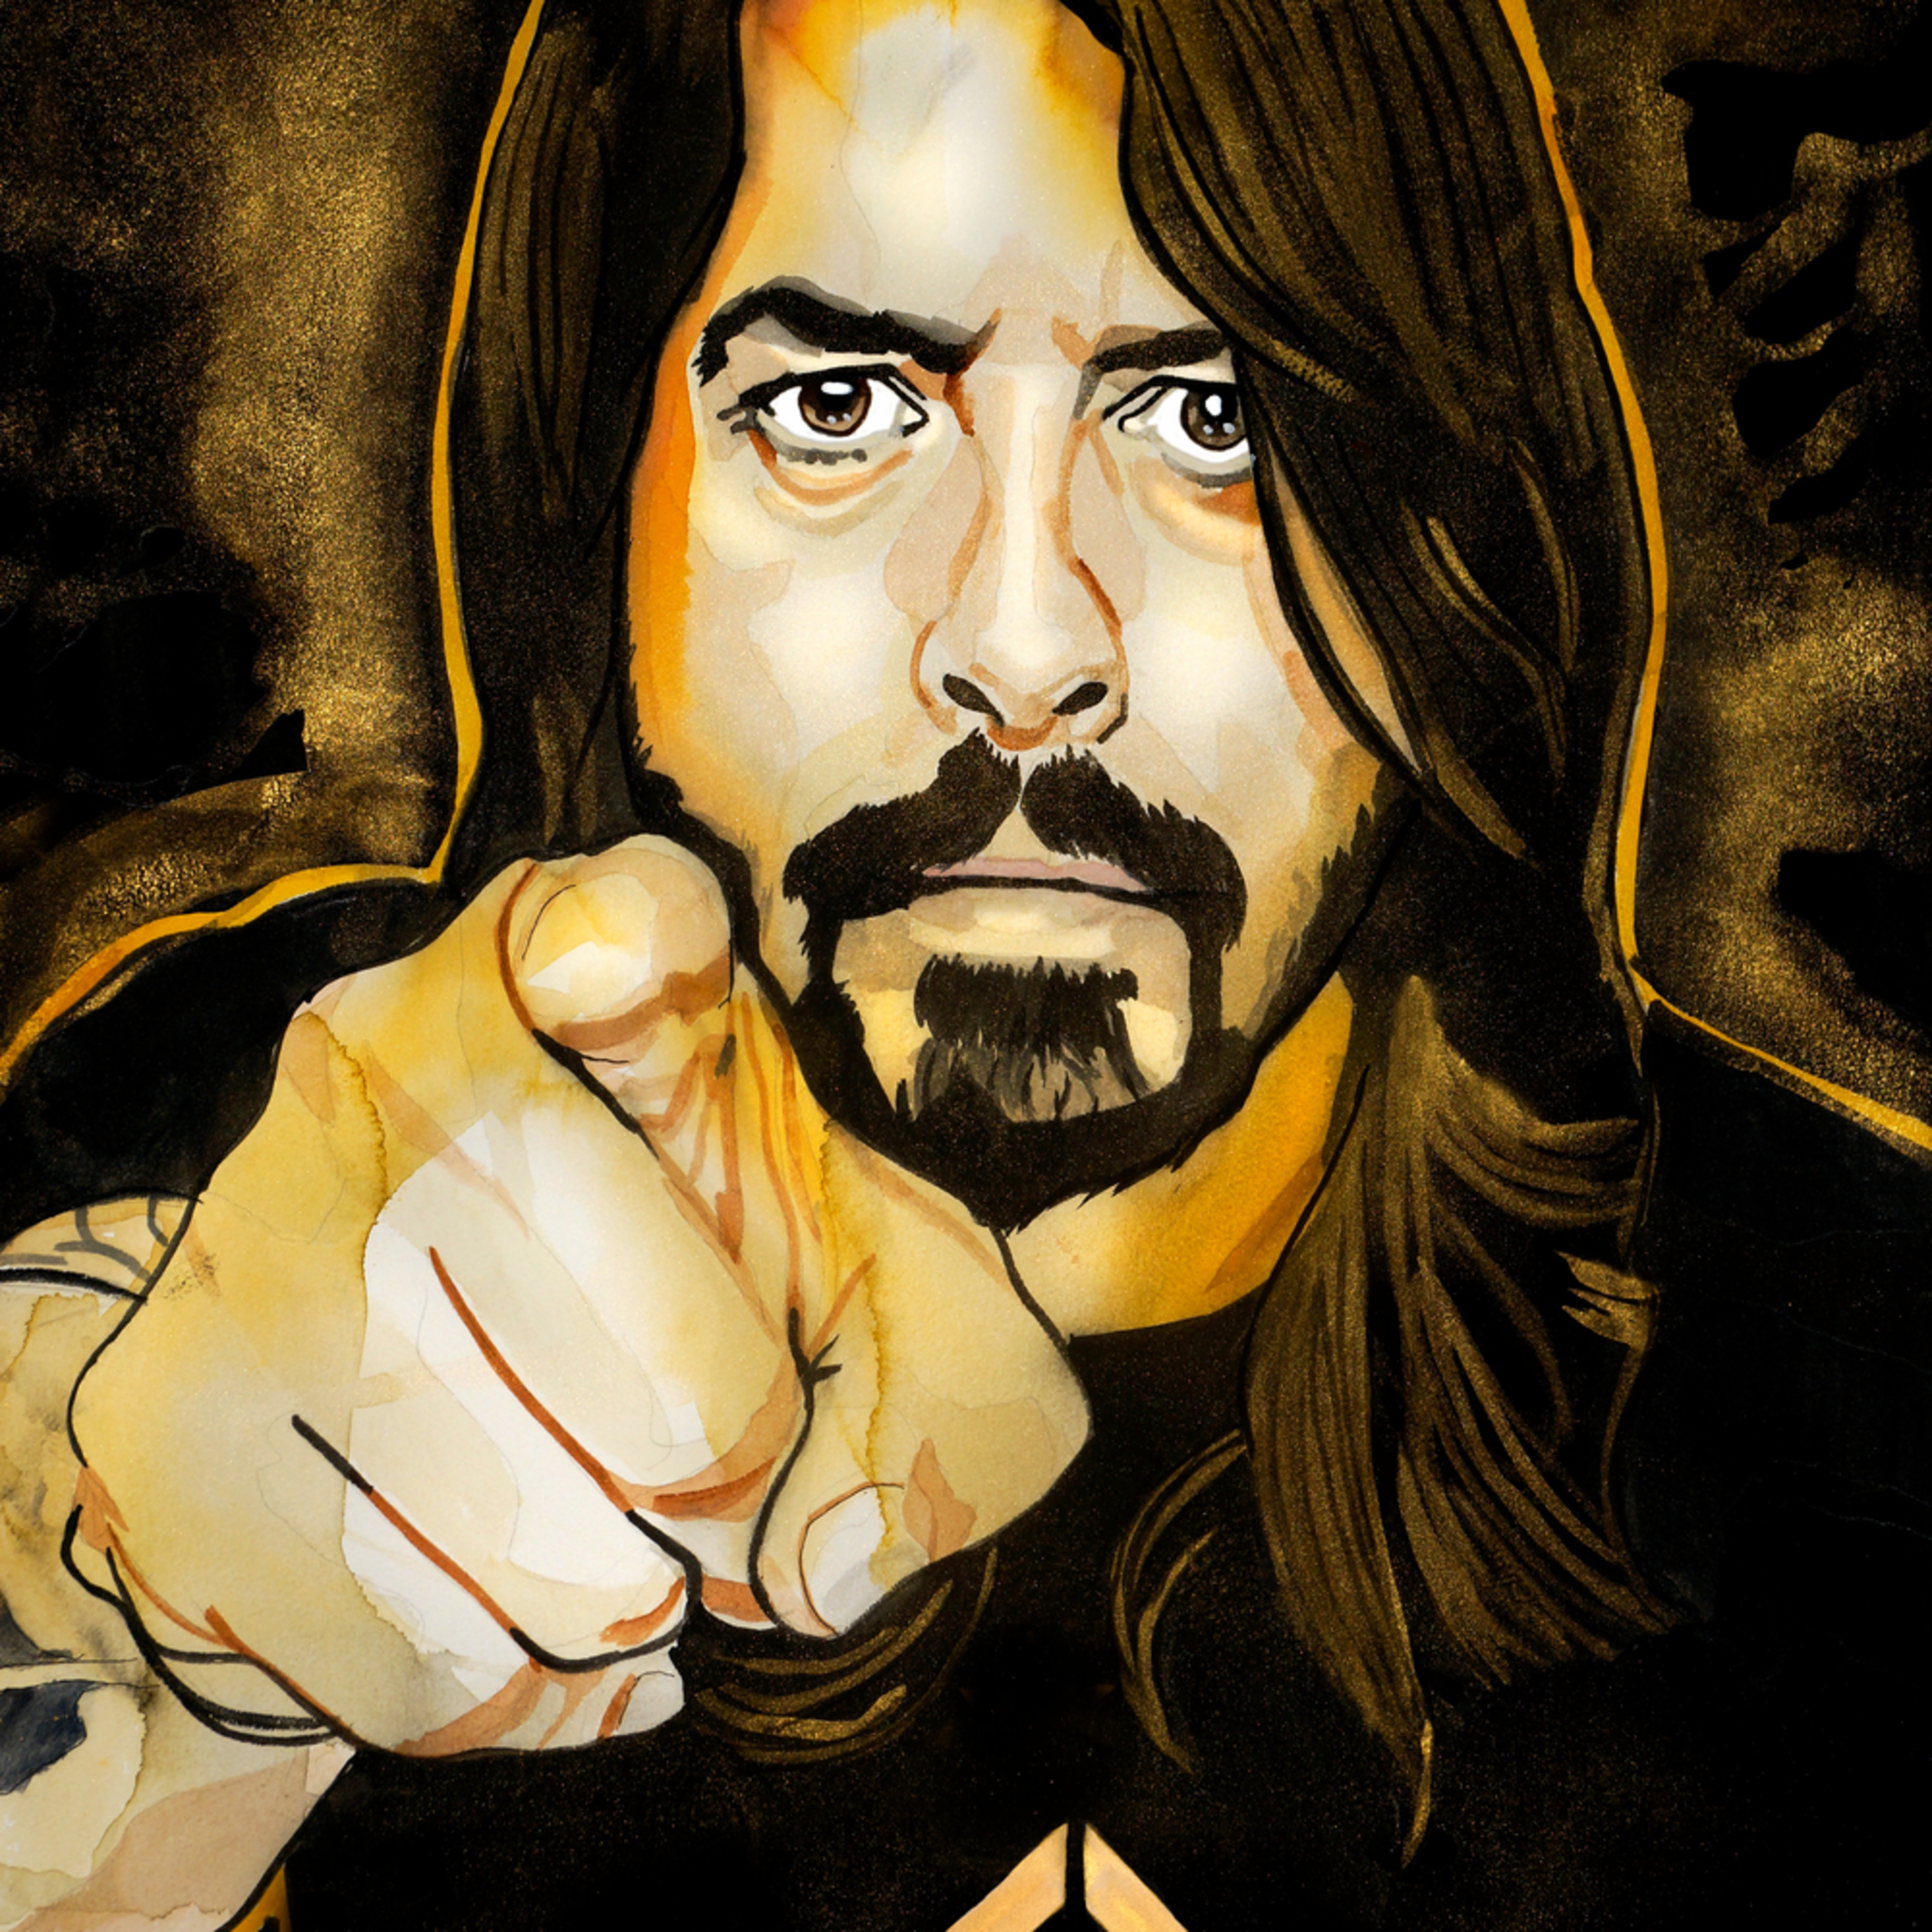 Dave grohl ff o rlgzit